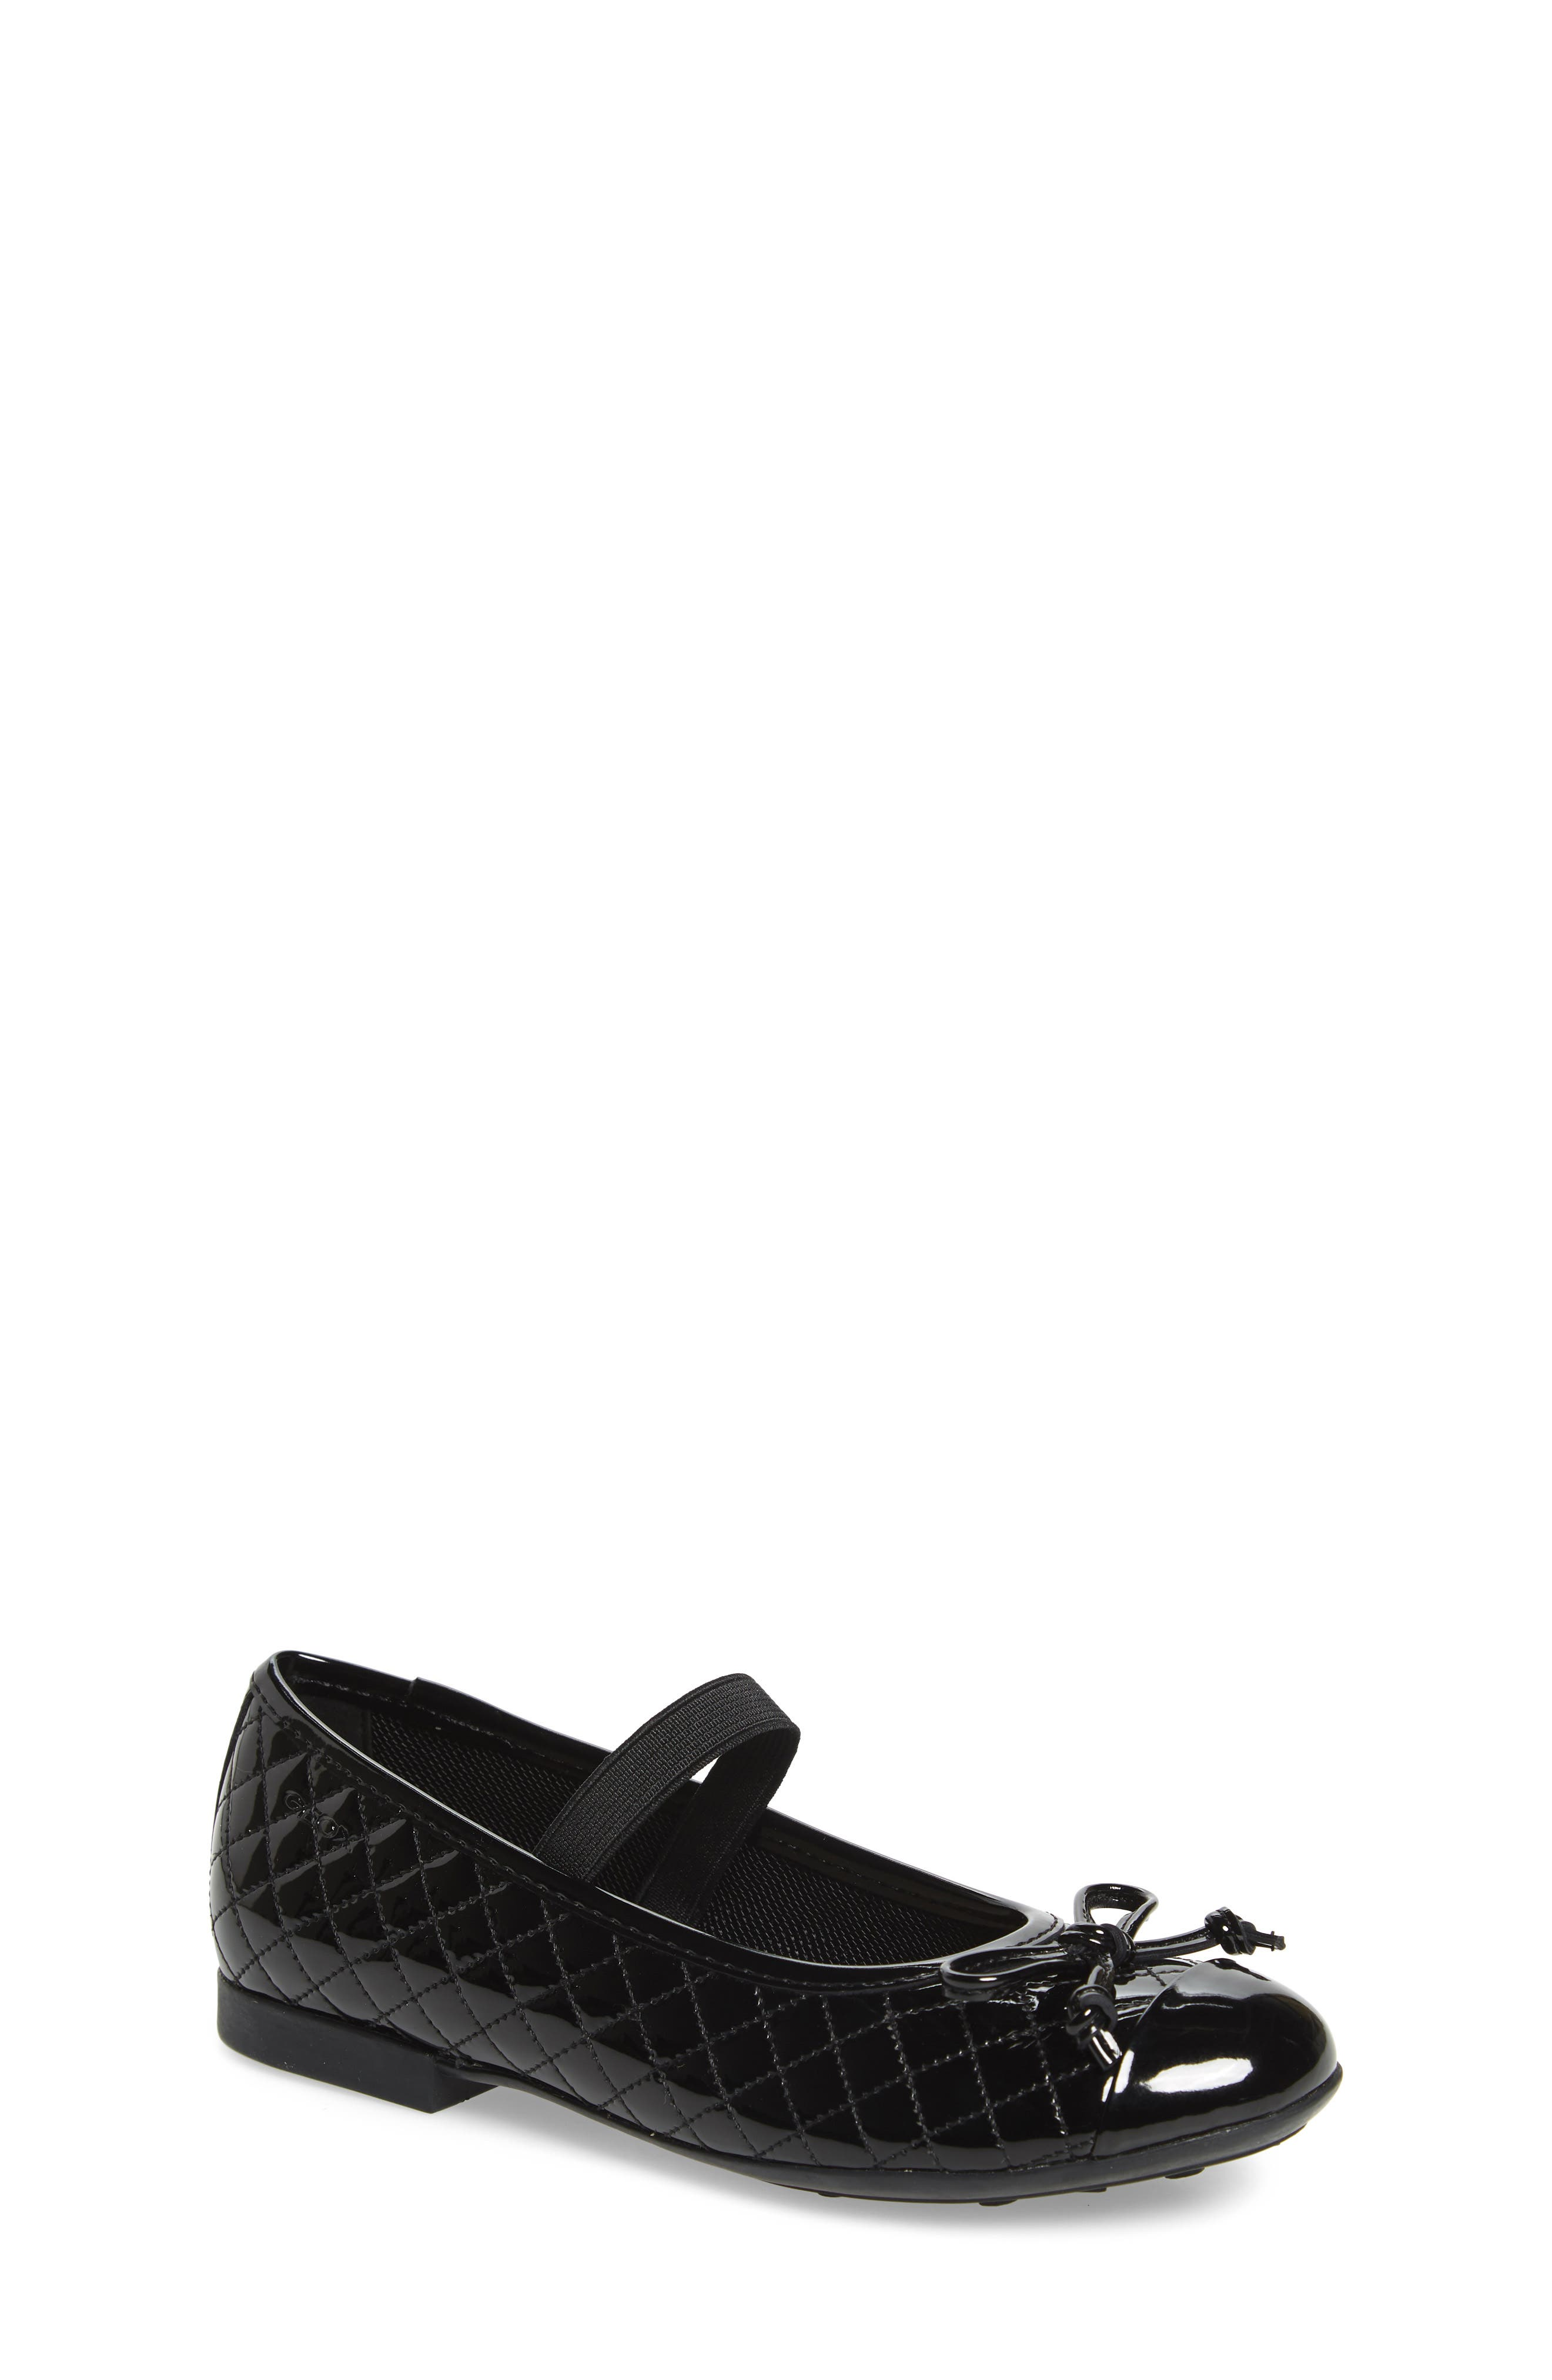 GEOX, 'Plie' Mary Jane Flat, Main thumbnail 1, color, BLACK/ BLACK